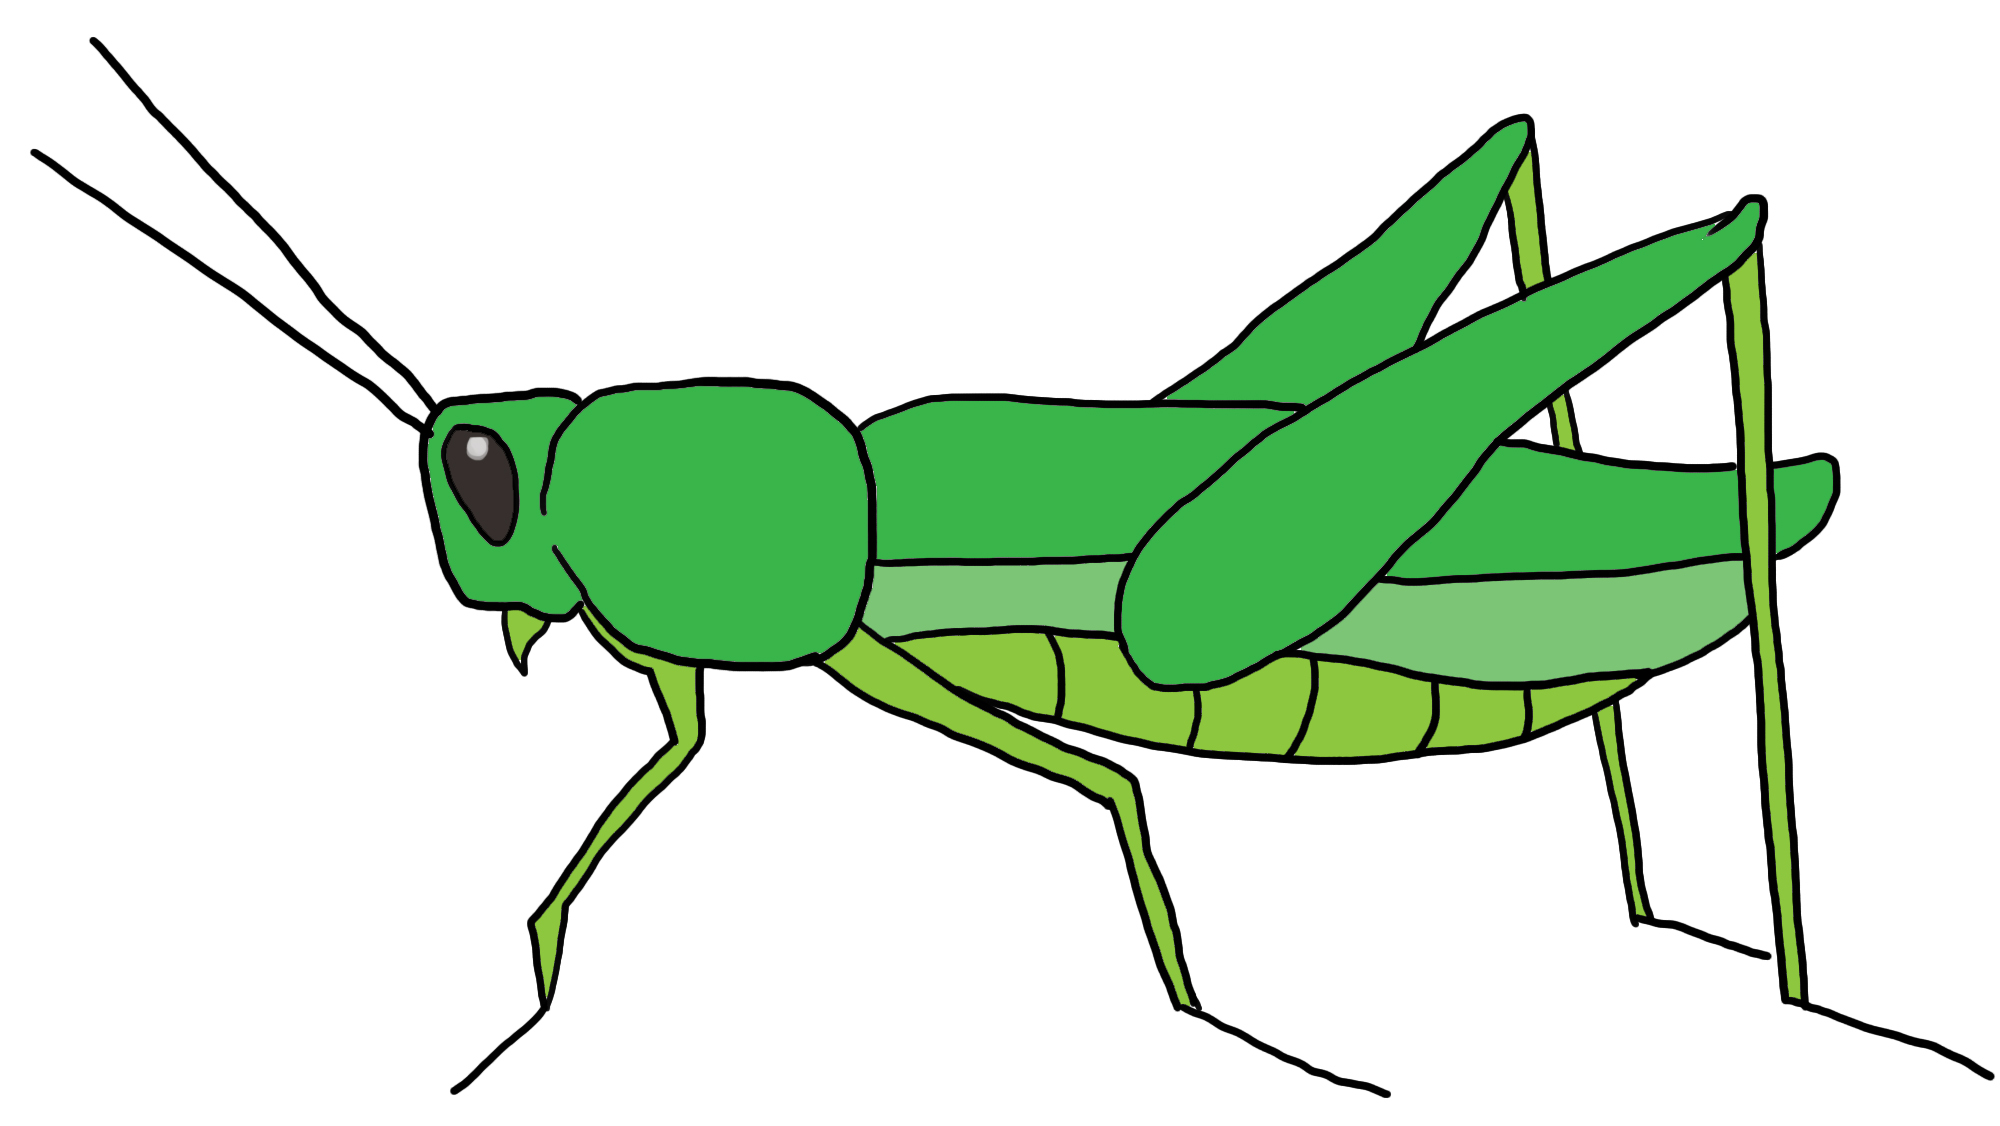 Grasshopper Drawing For Kids | Clipart Panda - Free Clipart Images